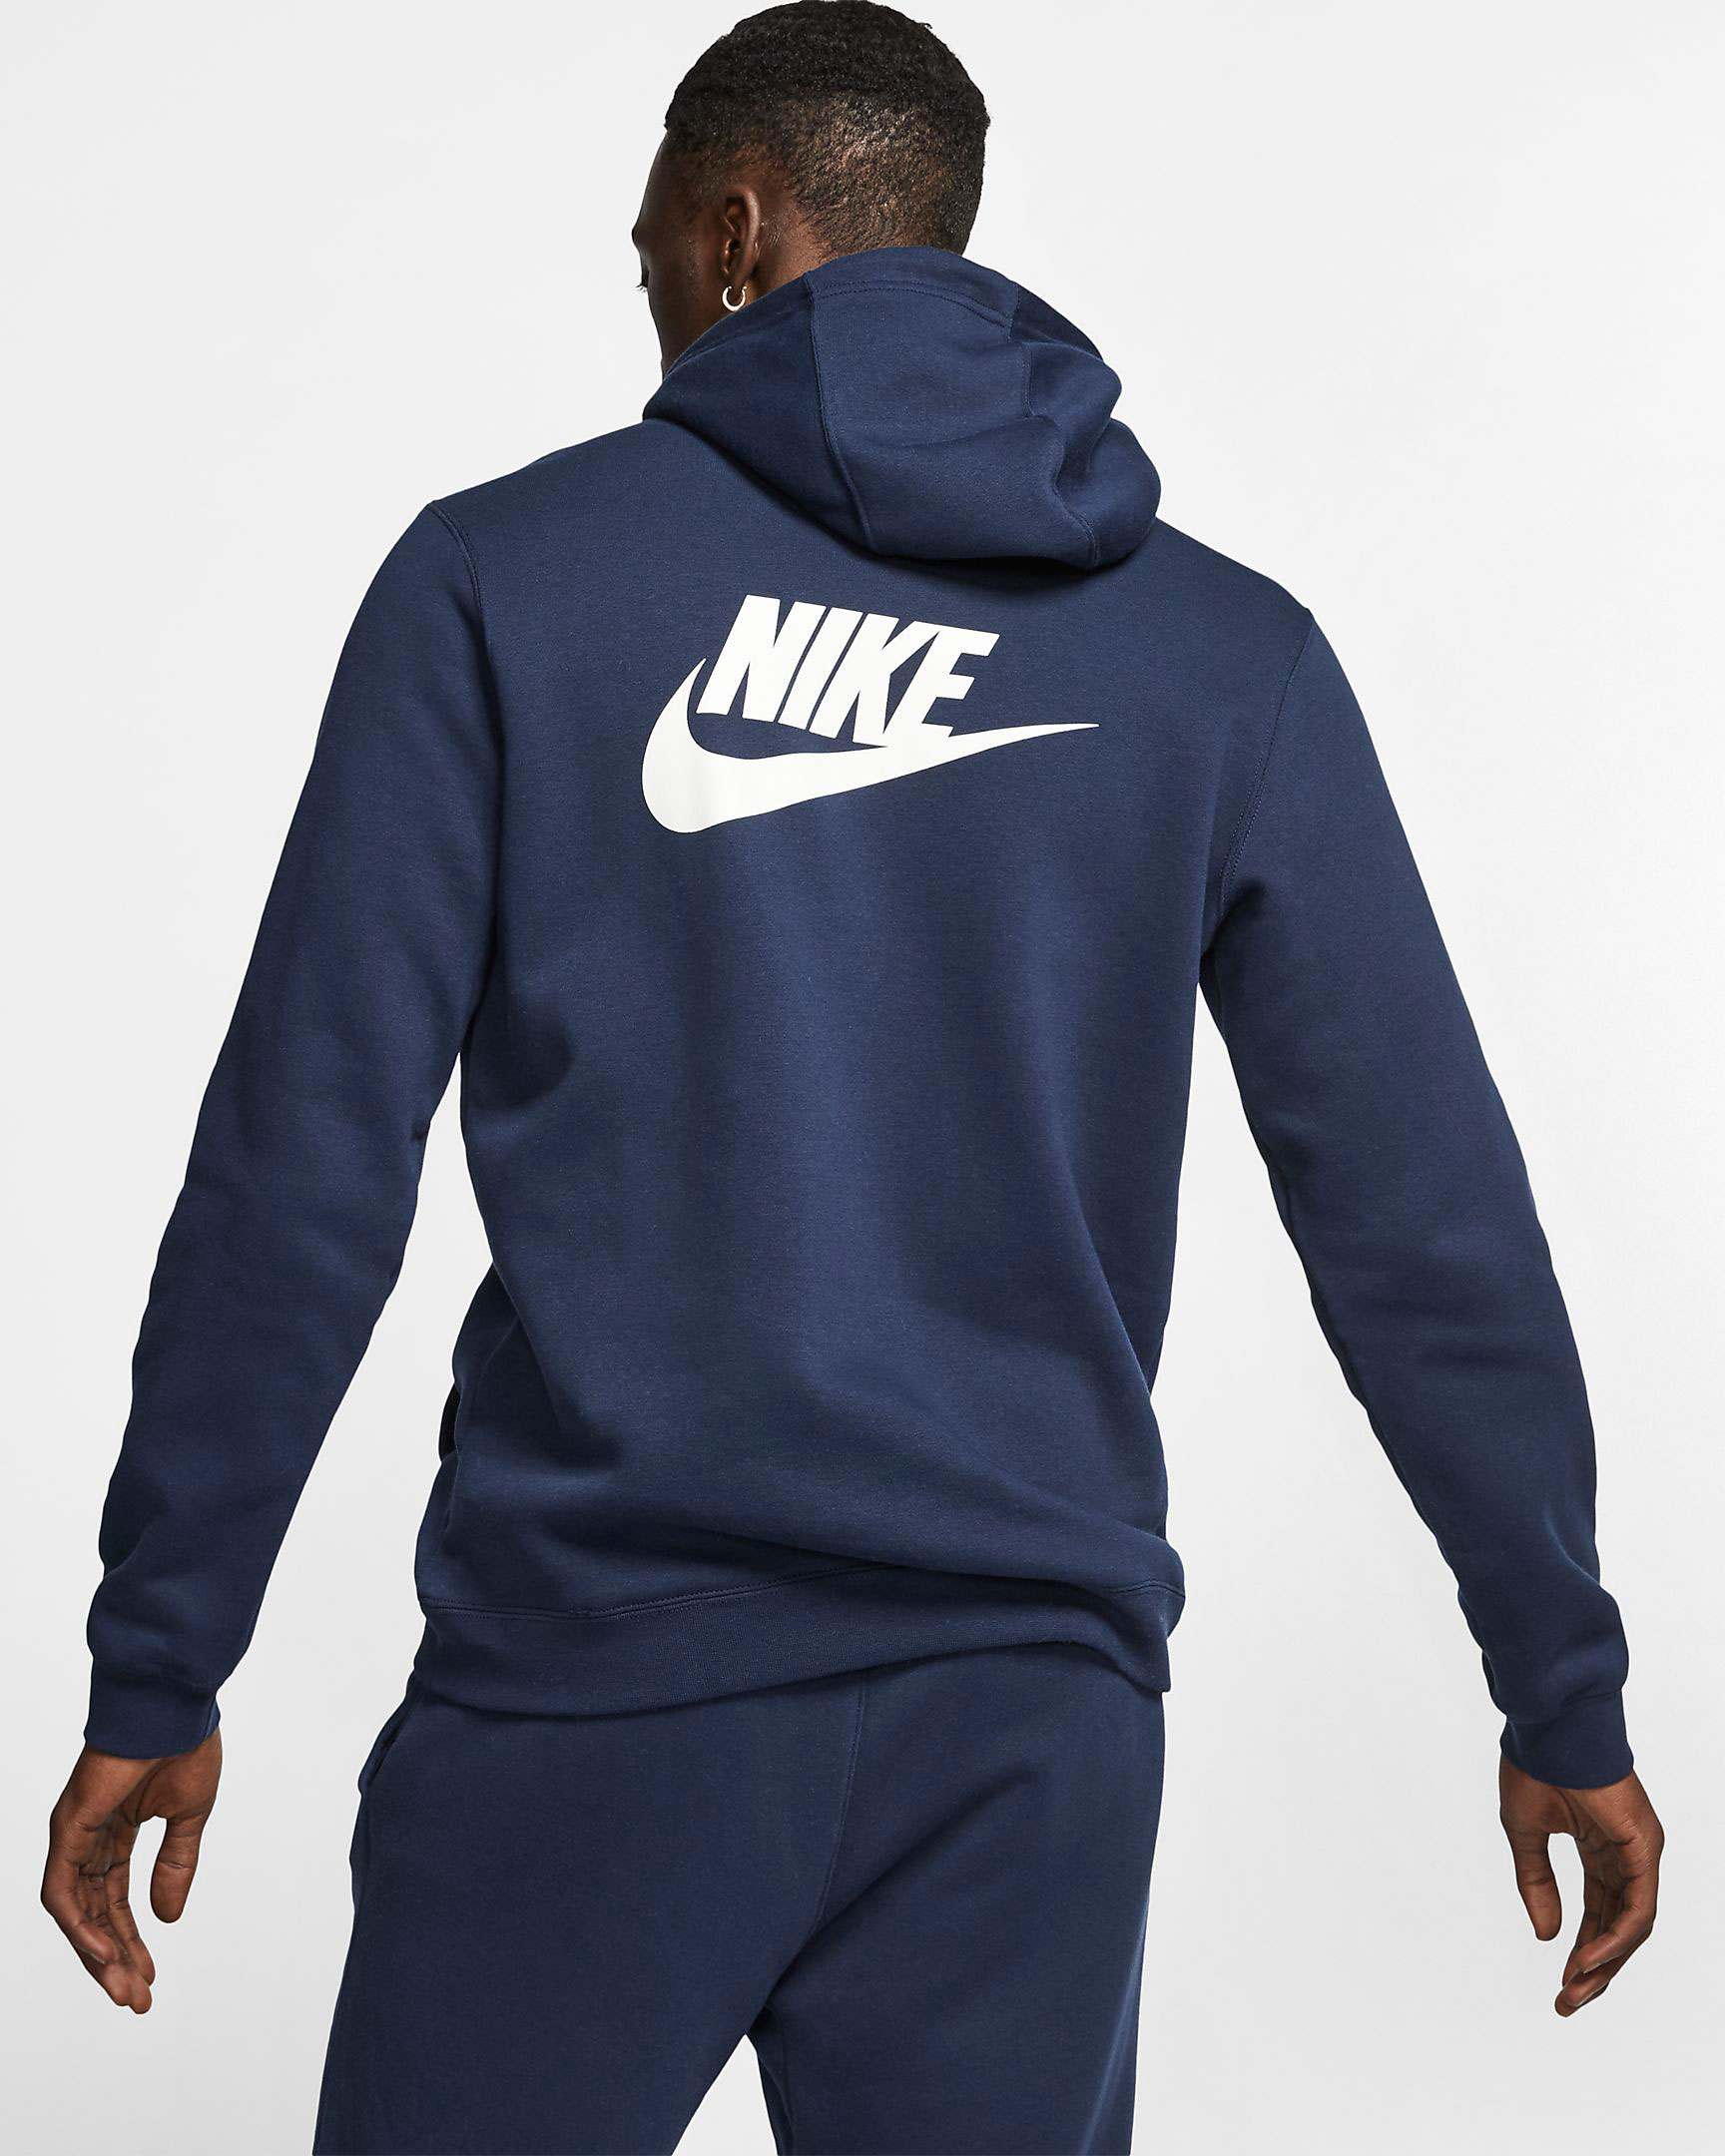 nike-stranger-things-og-4th-july-navy-hoodie-2